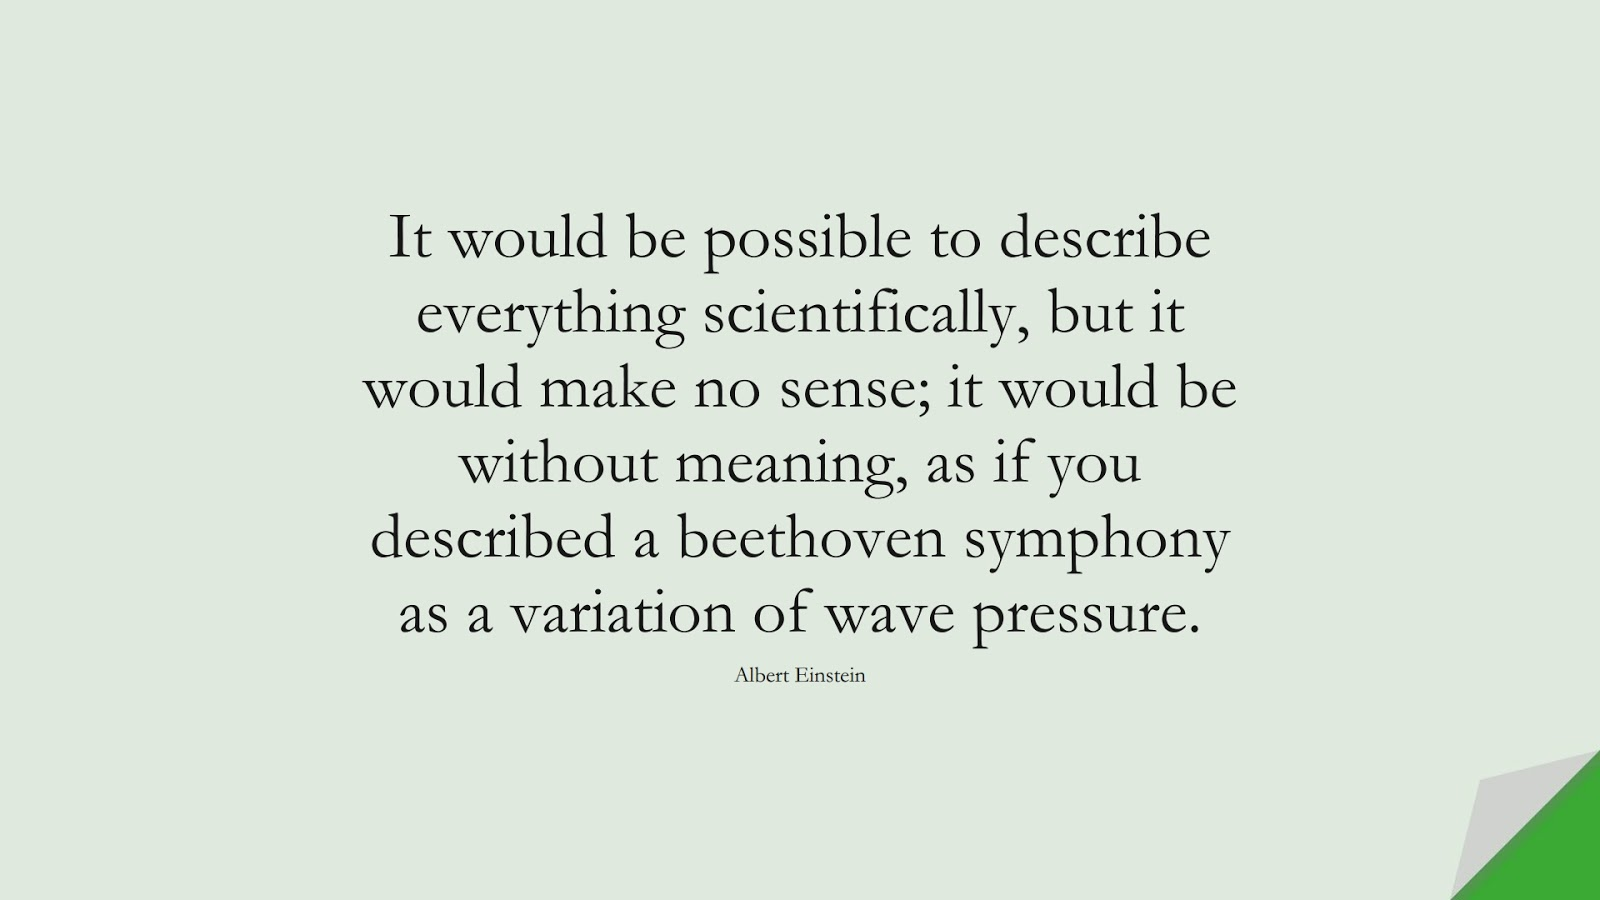 It would be possible to describe everything scientifically, but it would make no sense; it would be without meaning, as if you described a beethoven symphony as a variation of wave pressure. (Albert Einstein);  #AlbertEnsteinQuotes